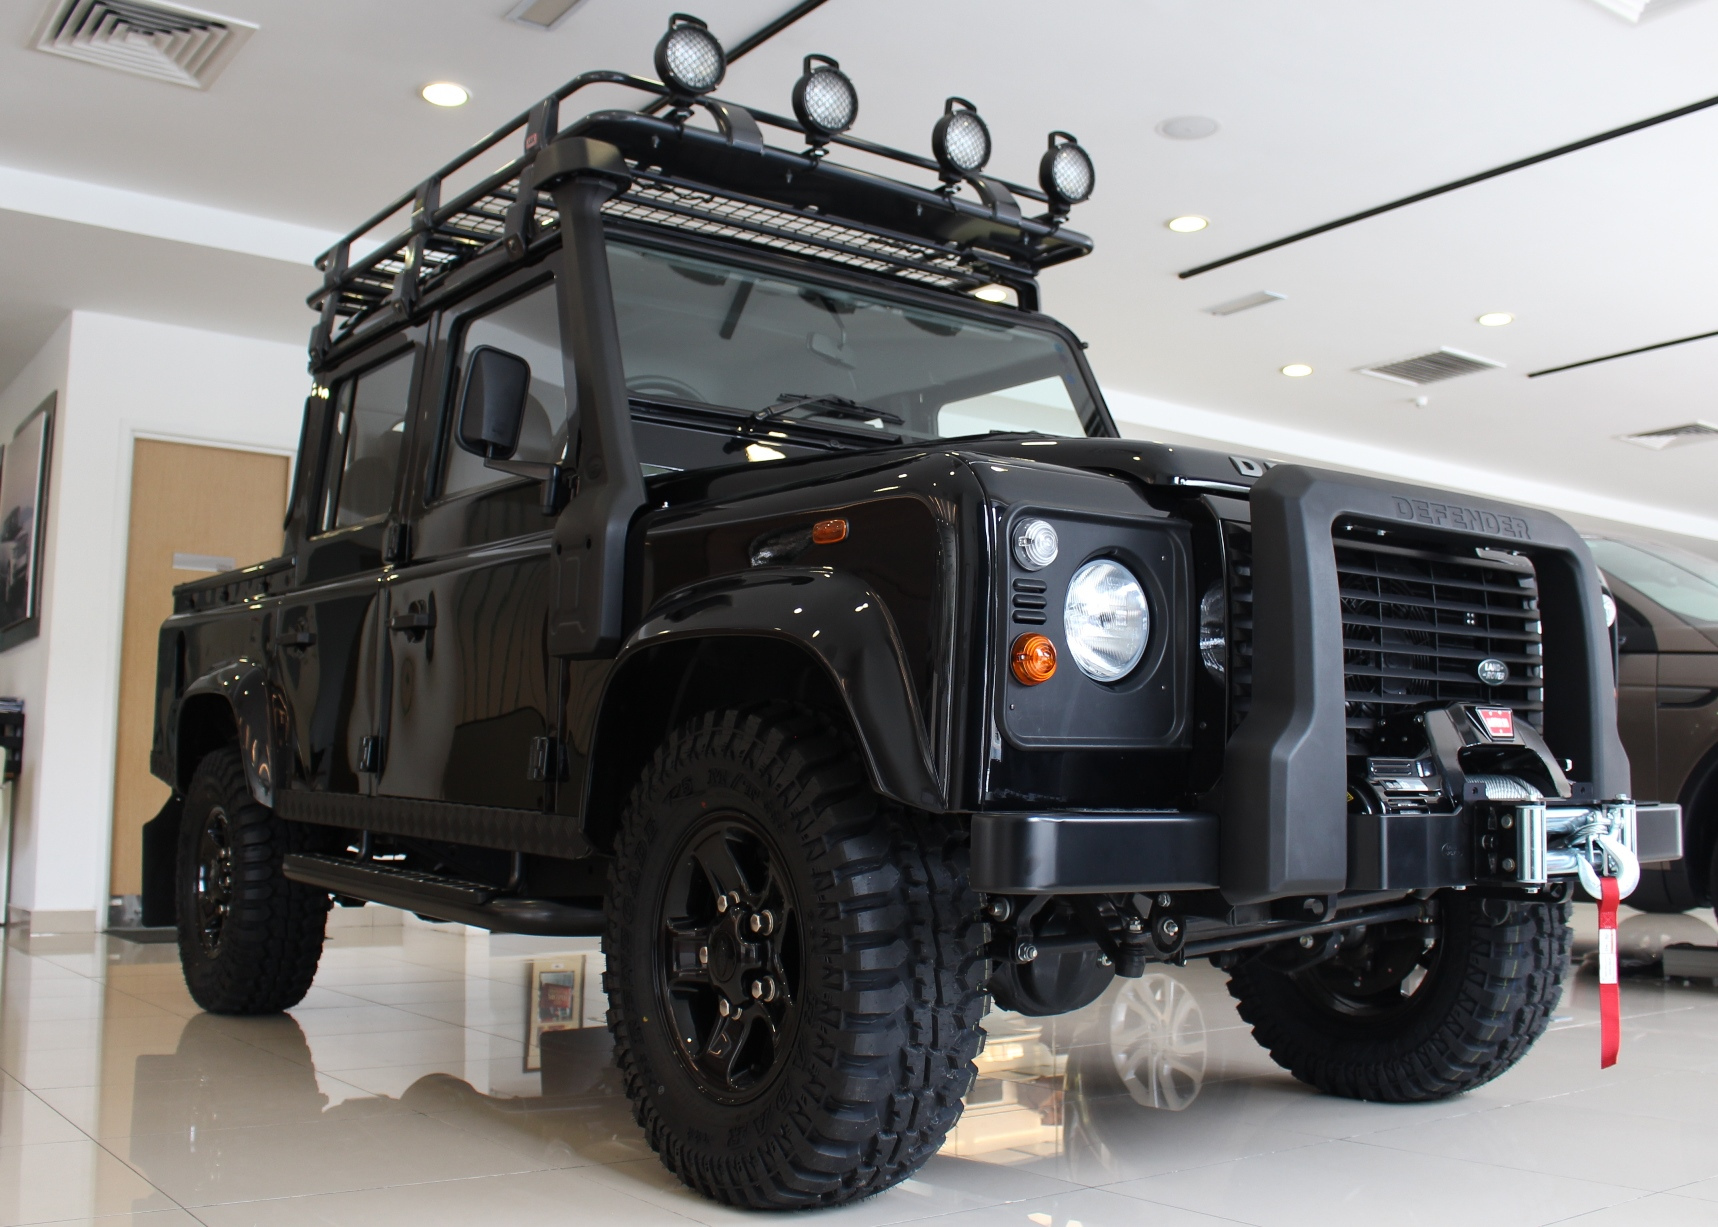 land rover defender limited edition launched kensomuse. Black Bedroom Furniture Sets. Home Design Ideas